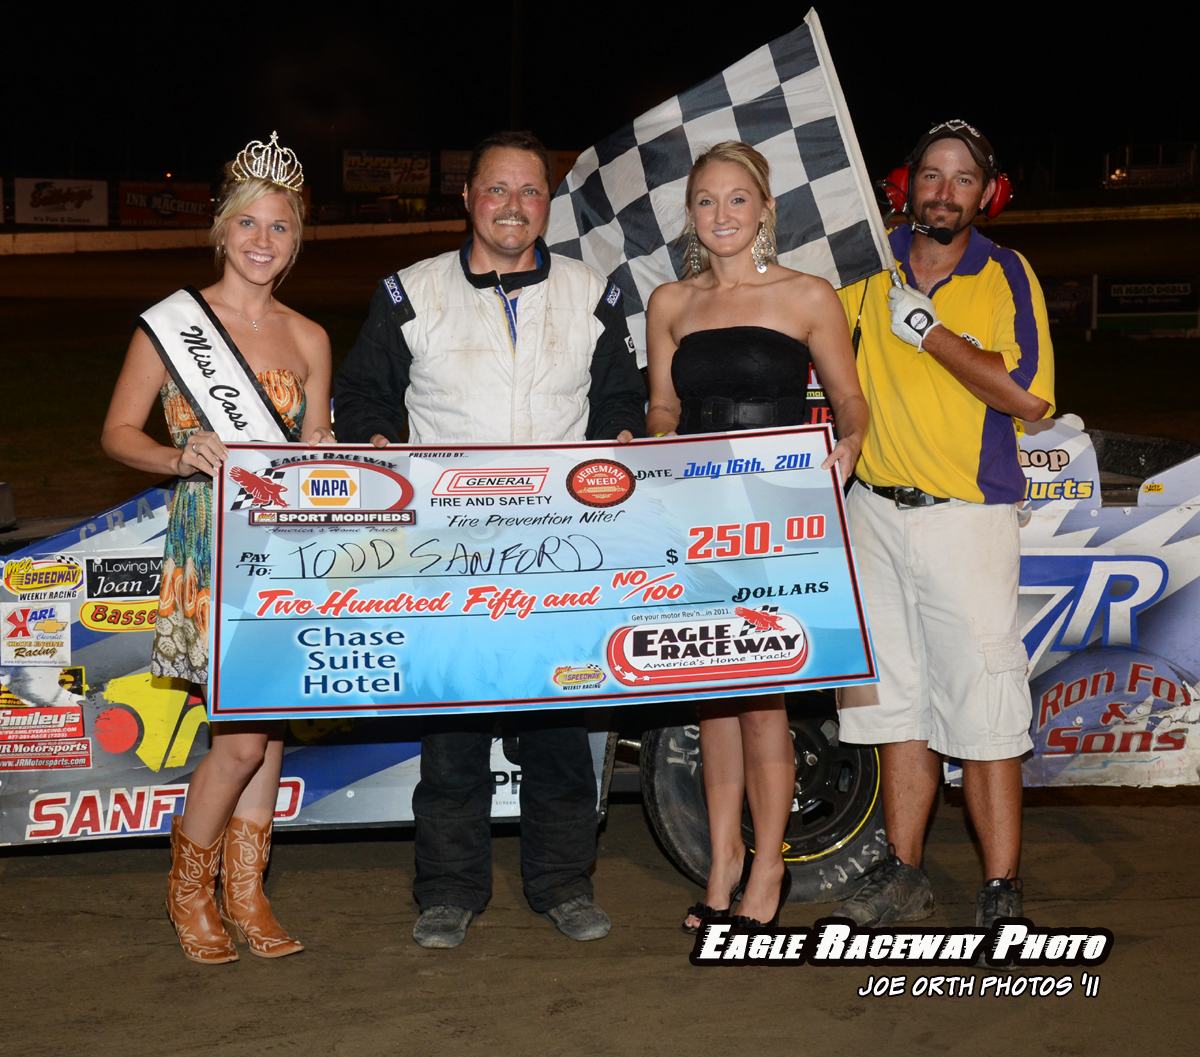 eagle-07-16-11-todd-sanford-with-miss-cass-county-deanne-kathol-and-2010-miss-nebraska-cup-finalist-jessica-spanel-and-flagman-billy-lloyd